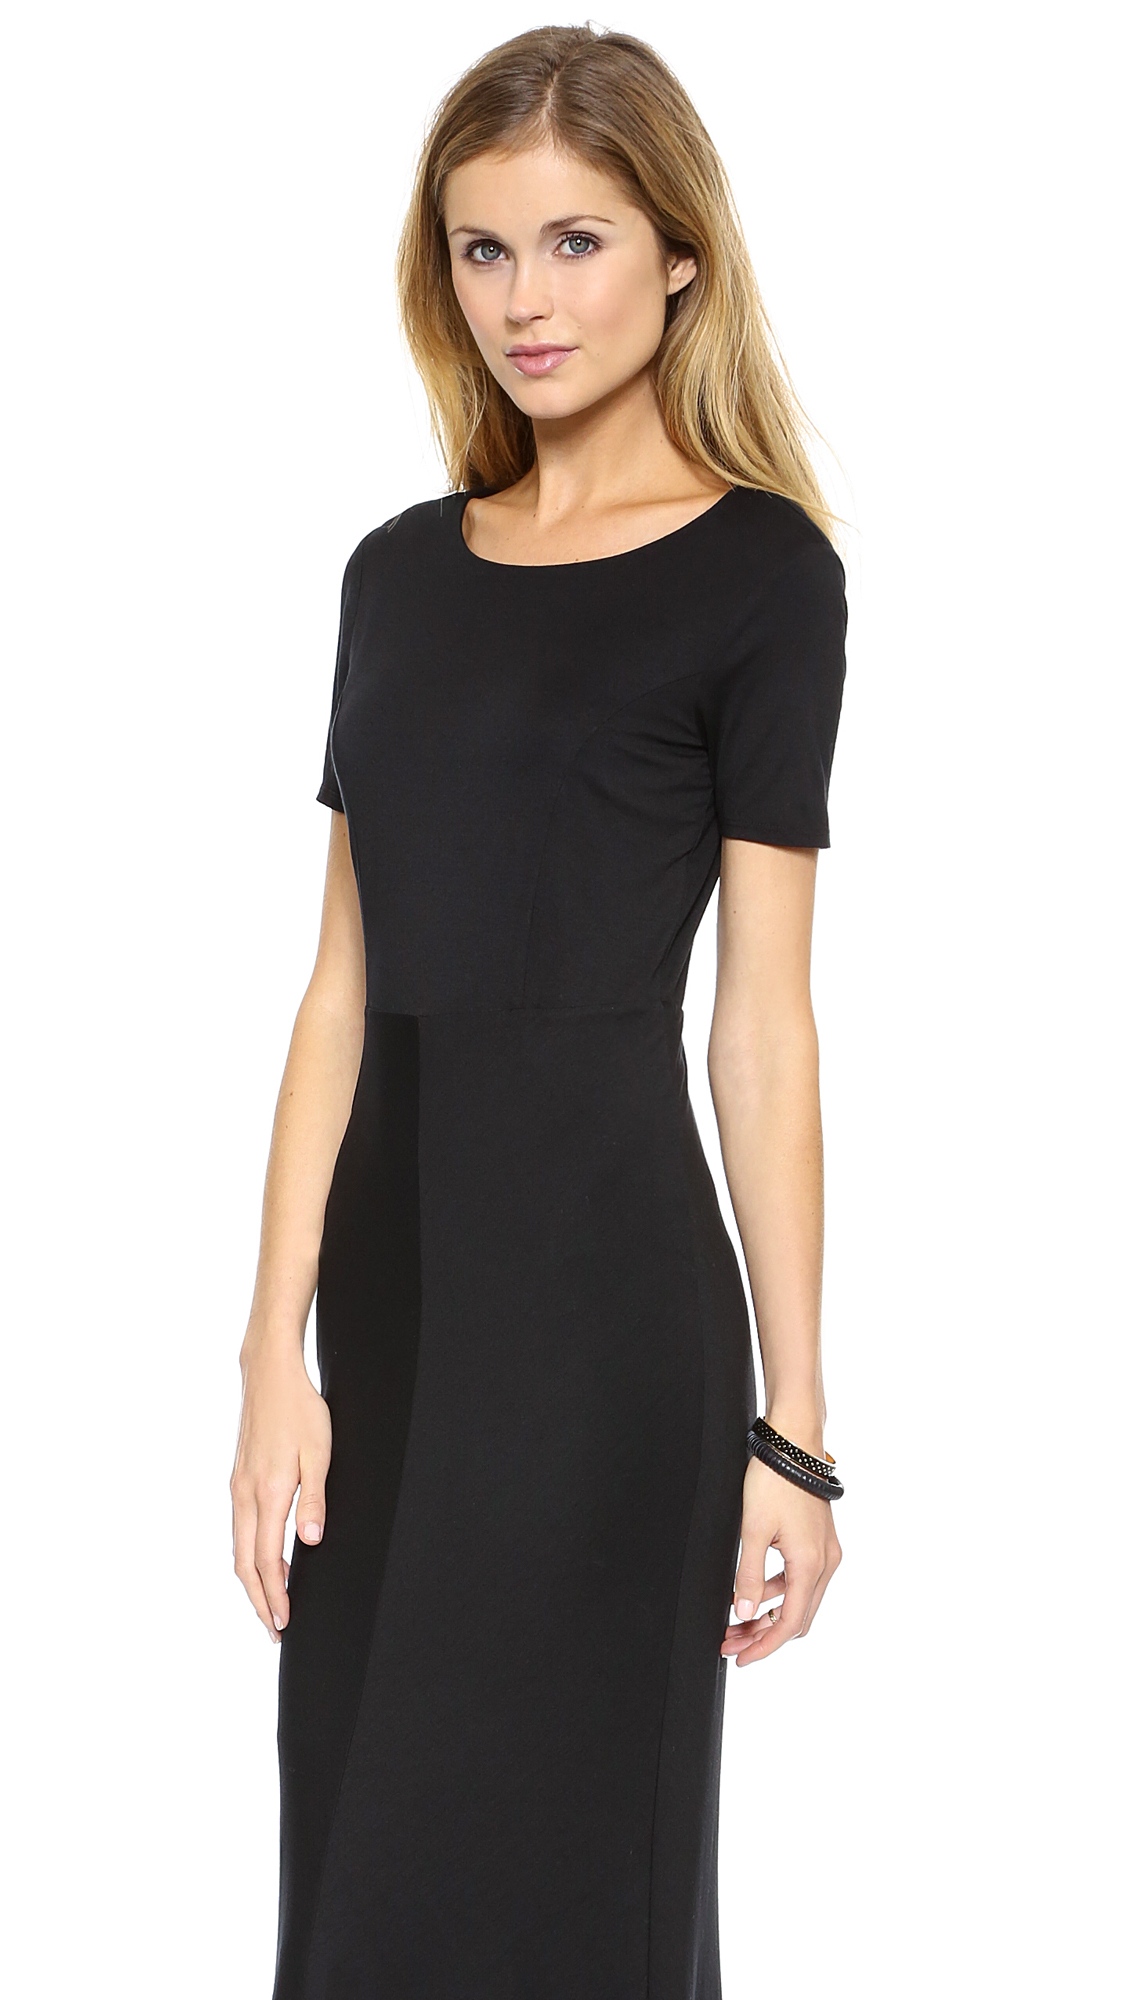 Three dots Short Sleeve Maxi Dress - Black in Black | Lyst